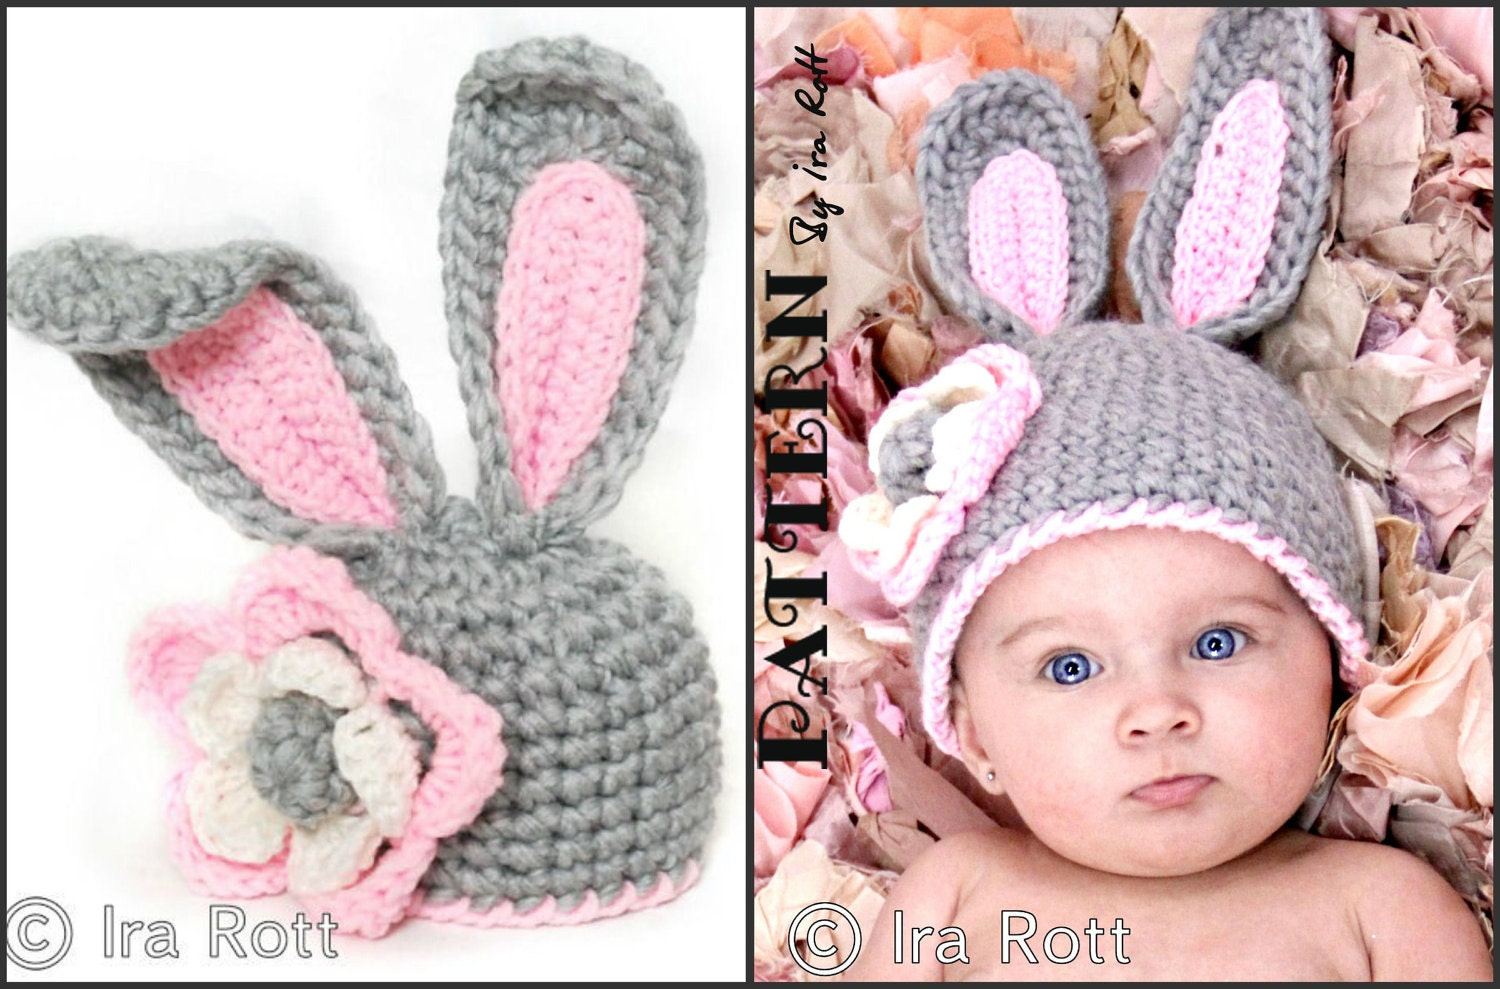 Crochet Bunny Hat With Flower Pattern : Google Image Result for http://img1.etsystatic.com/000/0 ...